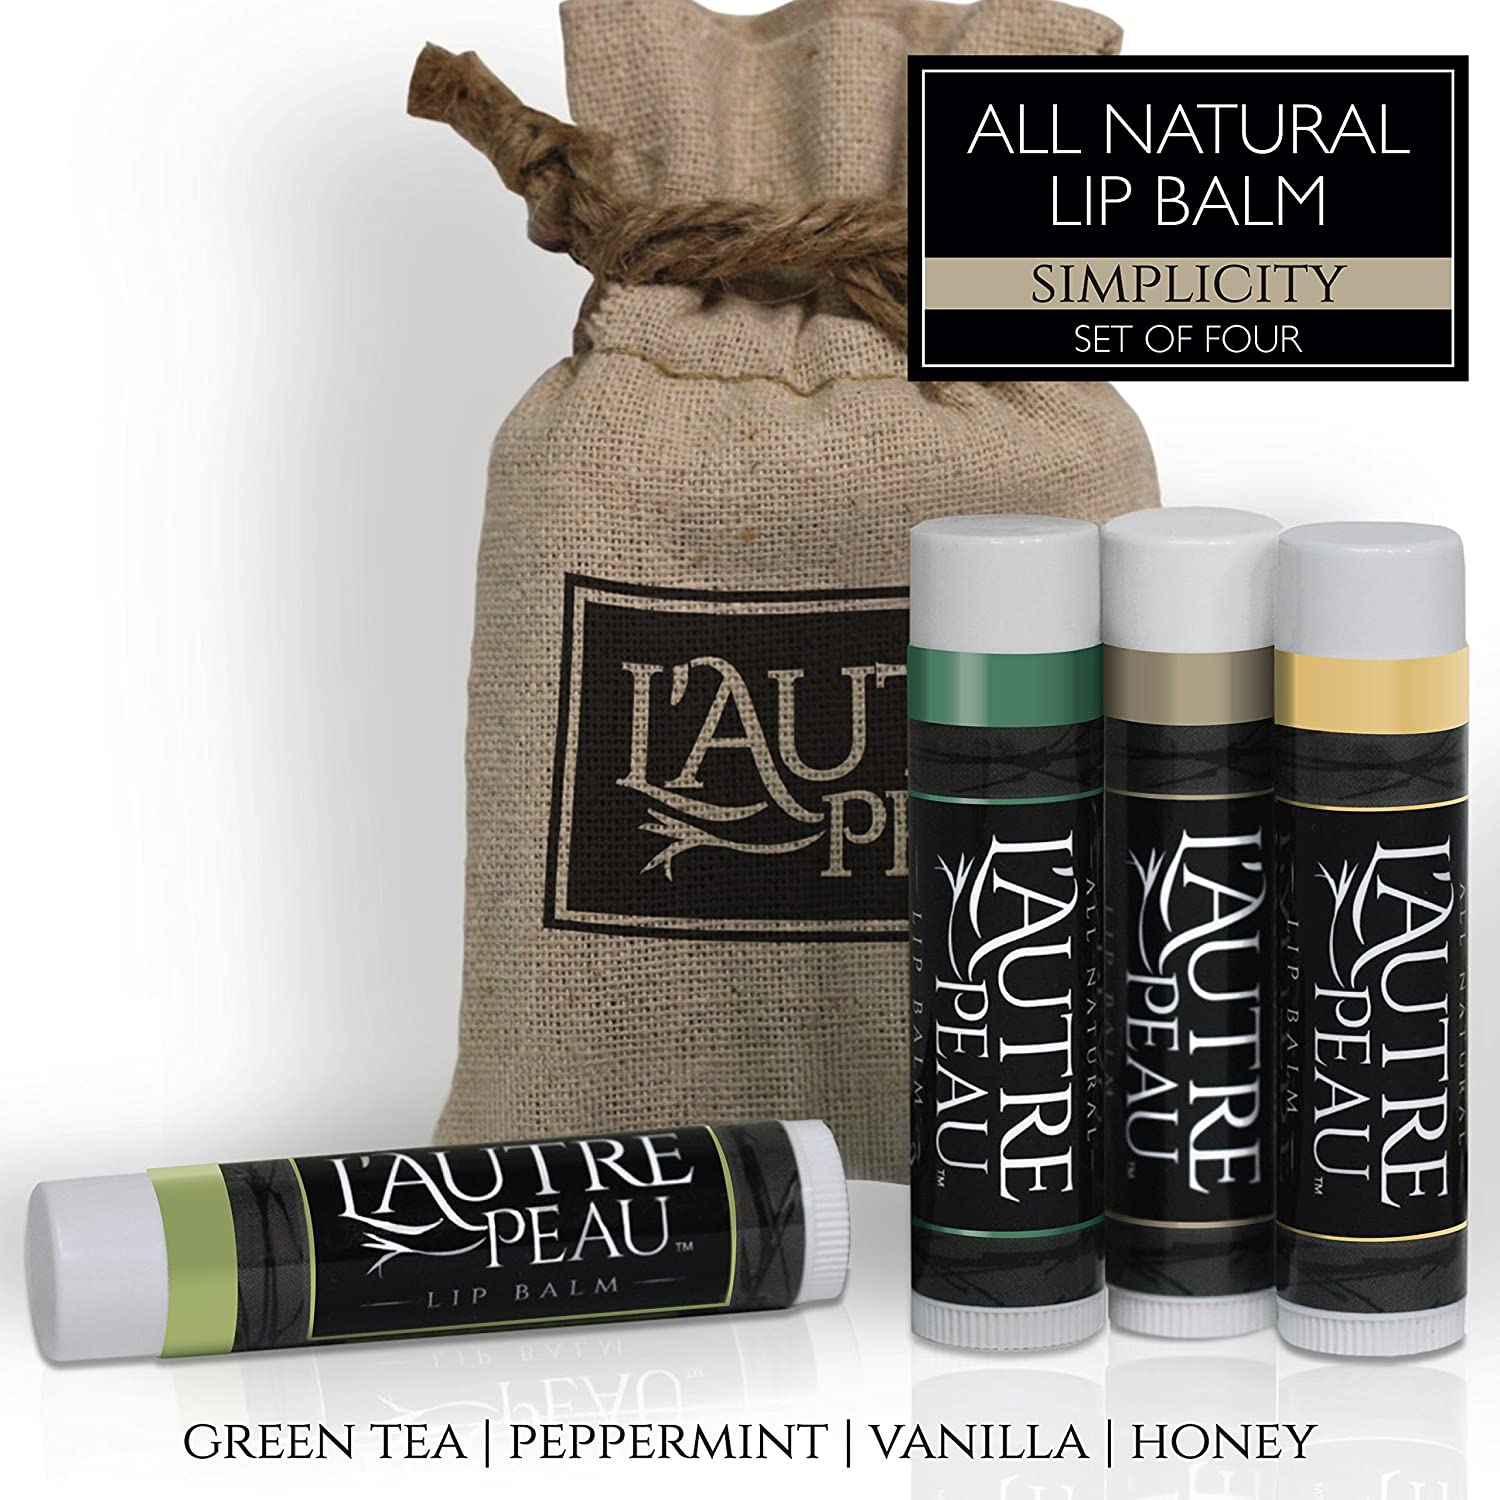 All Natural Luxury Lip Balm with Natural Beeswax by L'AUTRE PEAU - Dry Chapped Lips Treatment with Moisturizer | Simplicity Gift Set | Green Tea, Peppermint, Vanilla & Honey (4 Pack)